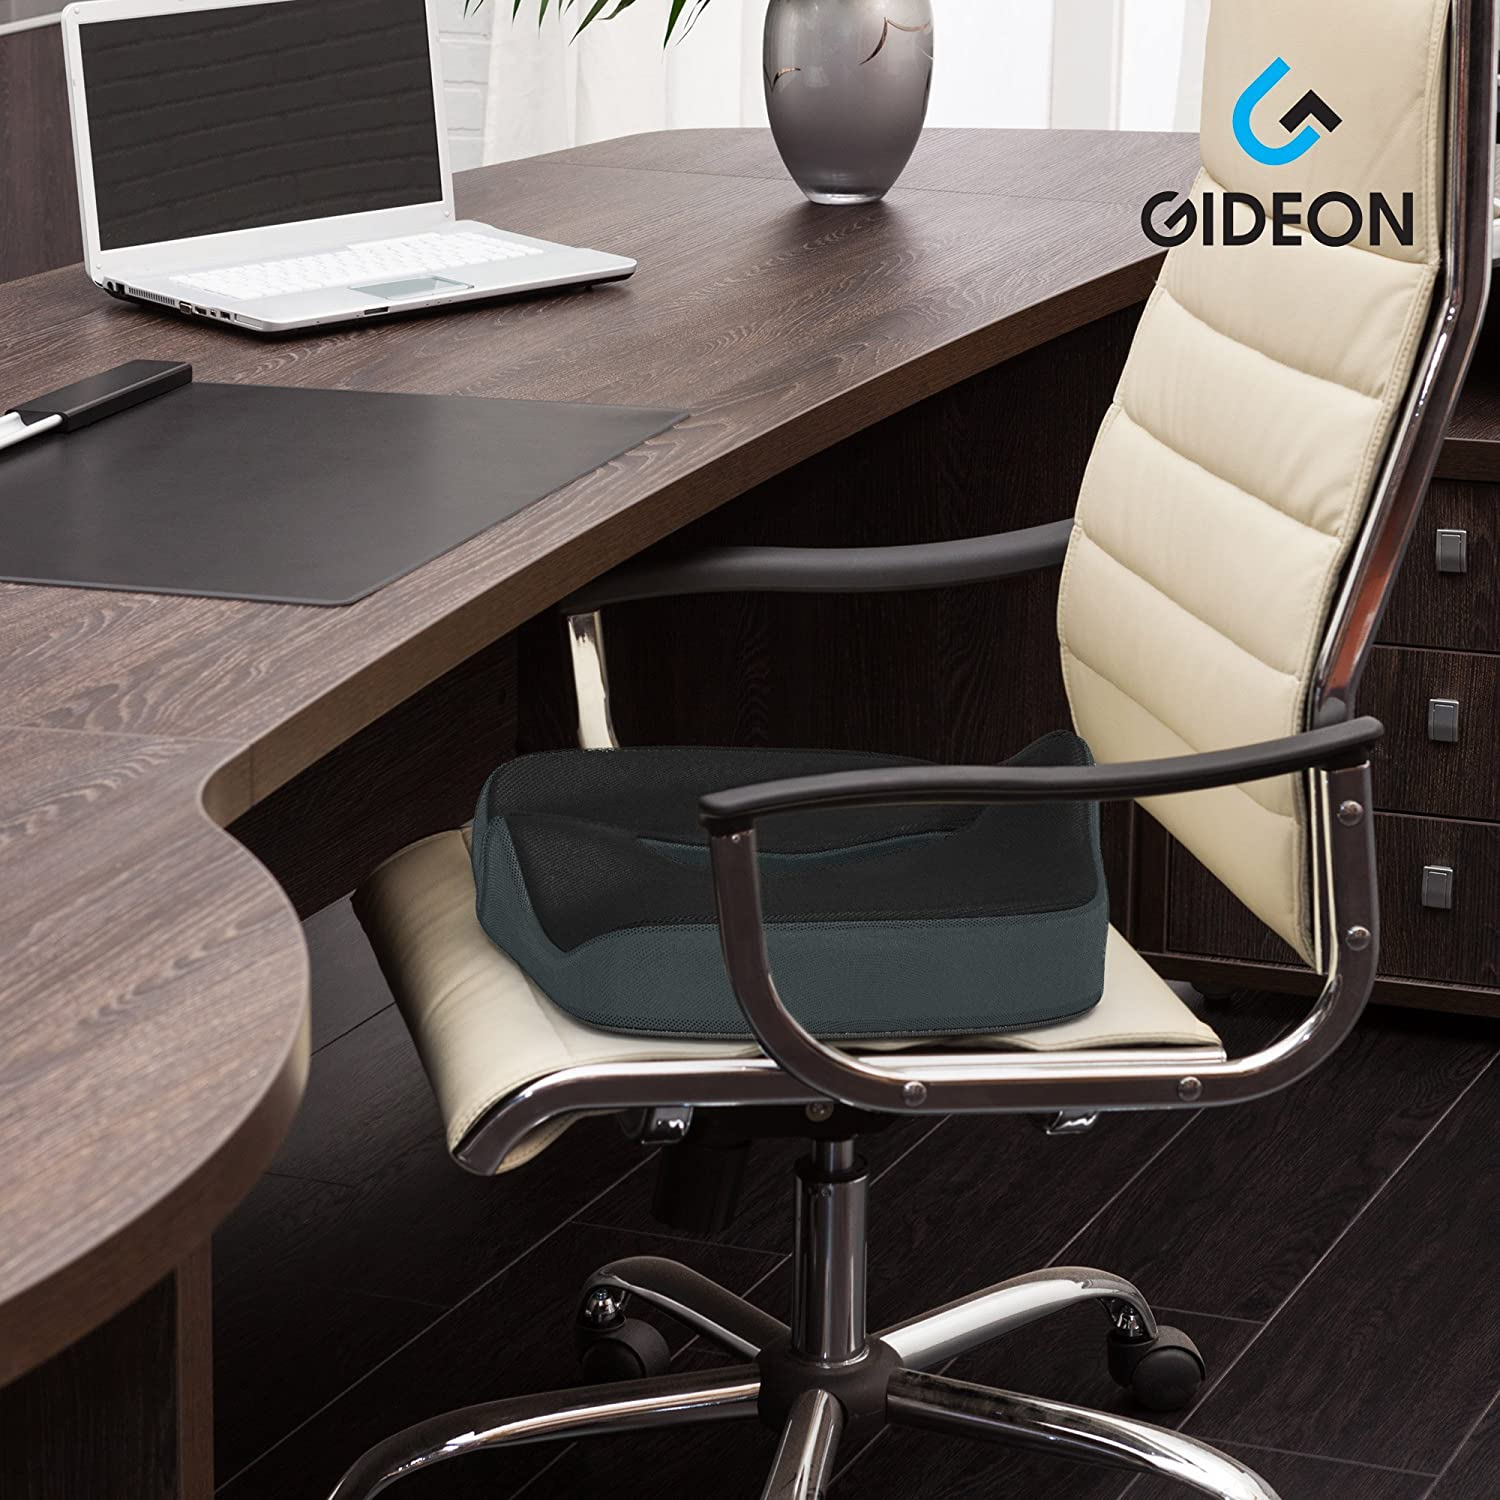 amazon com gideon 8482 premium orthopedic seat cushion for